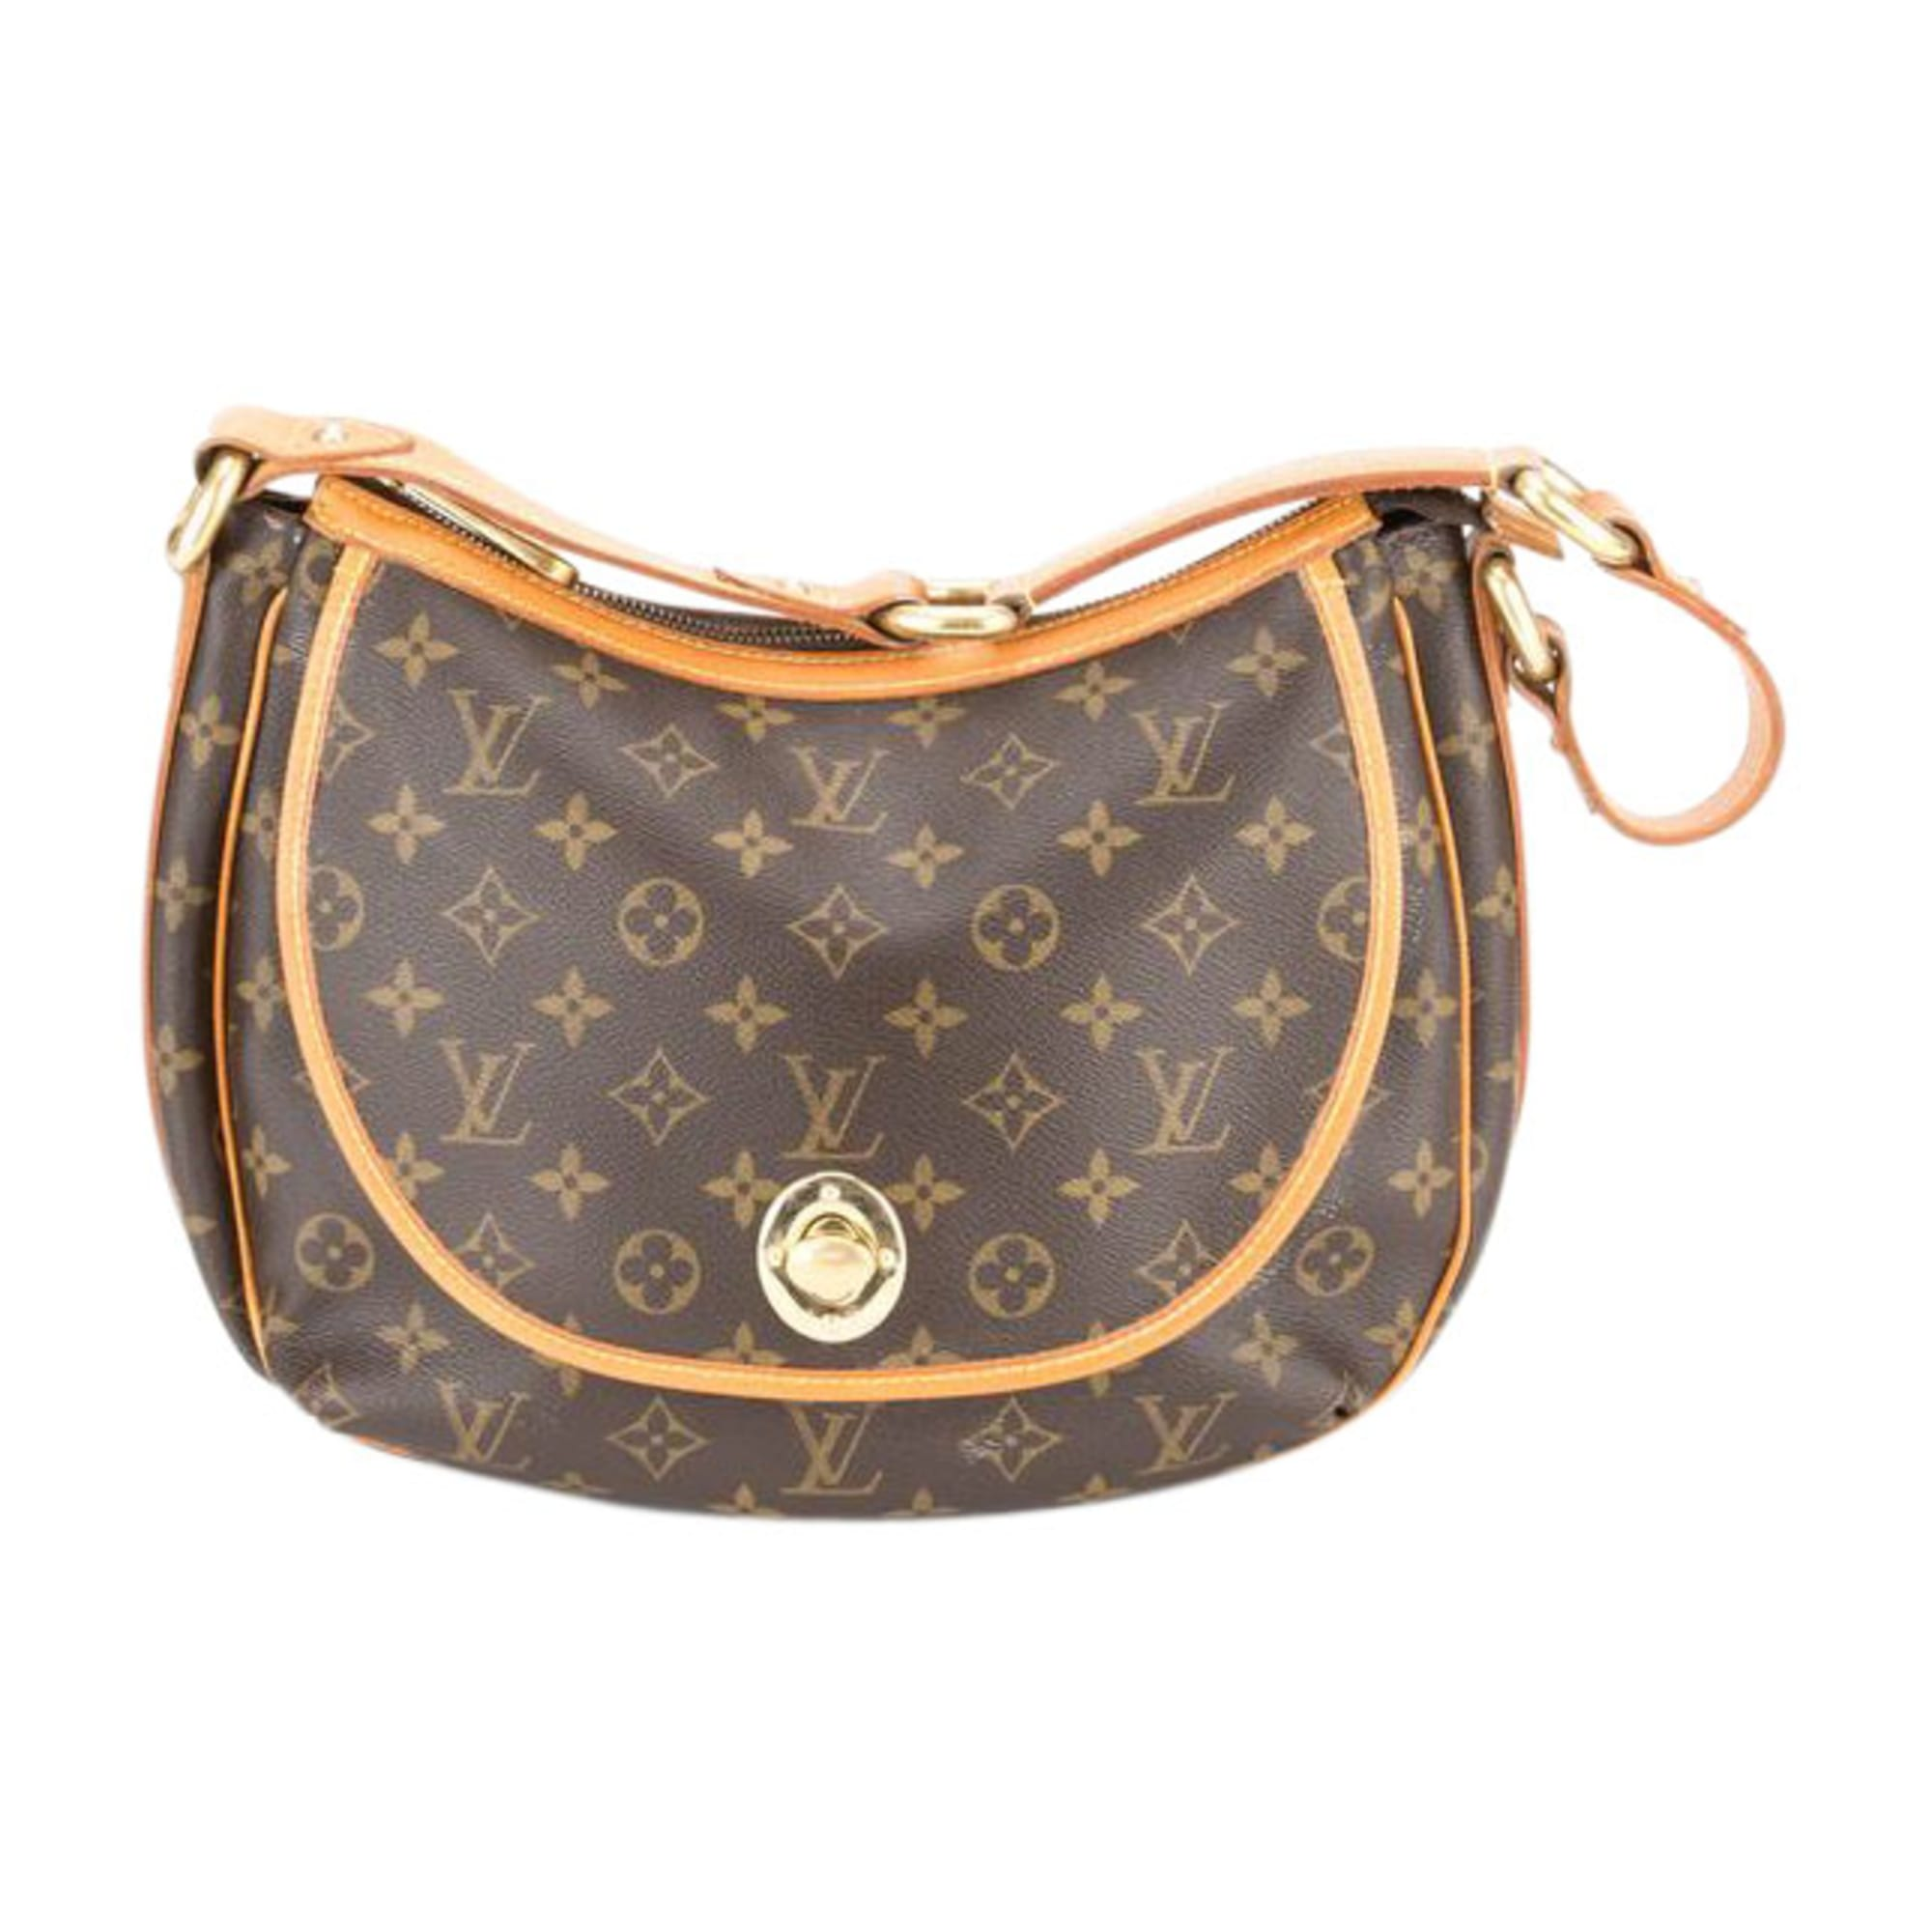 Borsa a tracolla in pelle LOUIS VUITTON beige - 5002602